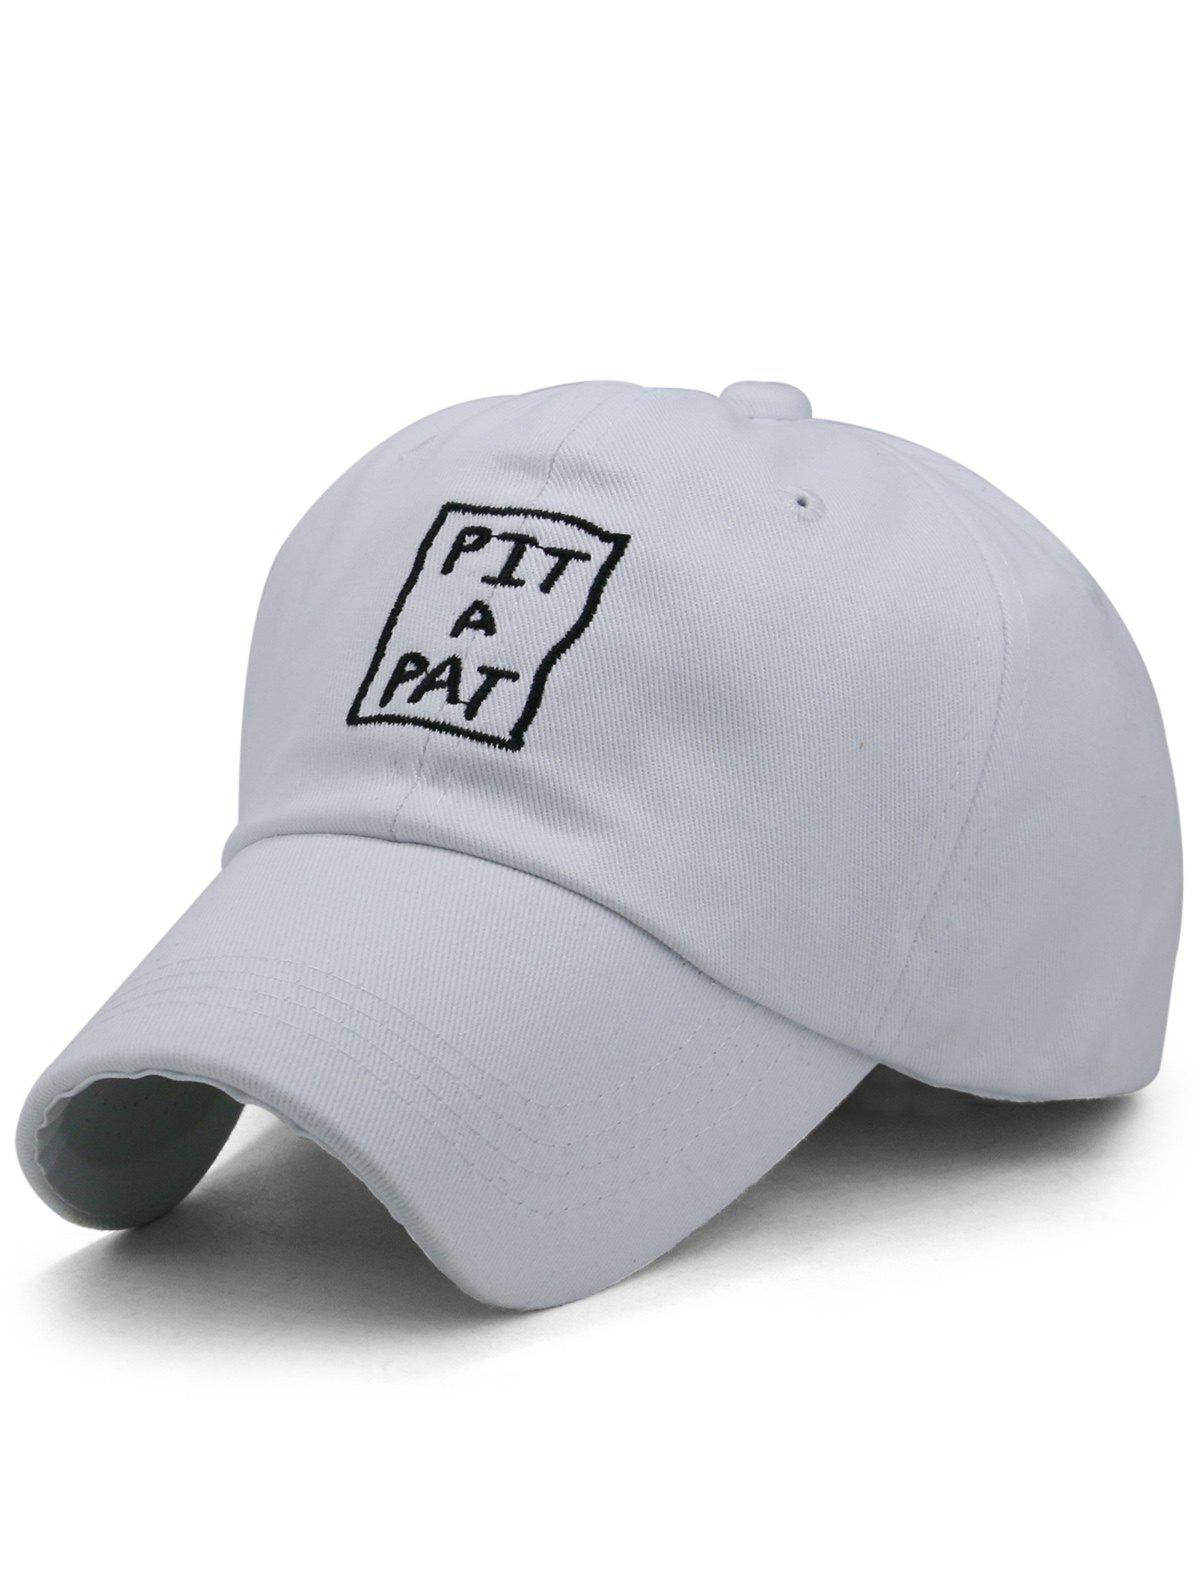 Fashion PIT A PAT Embroidery Adjustable Graphic Hat